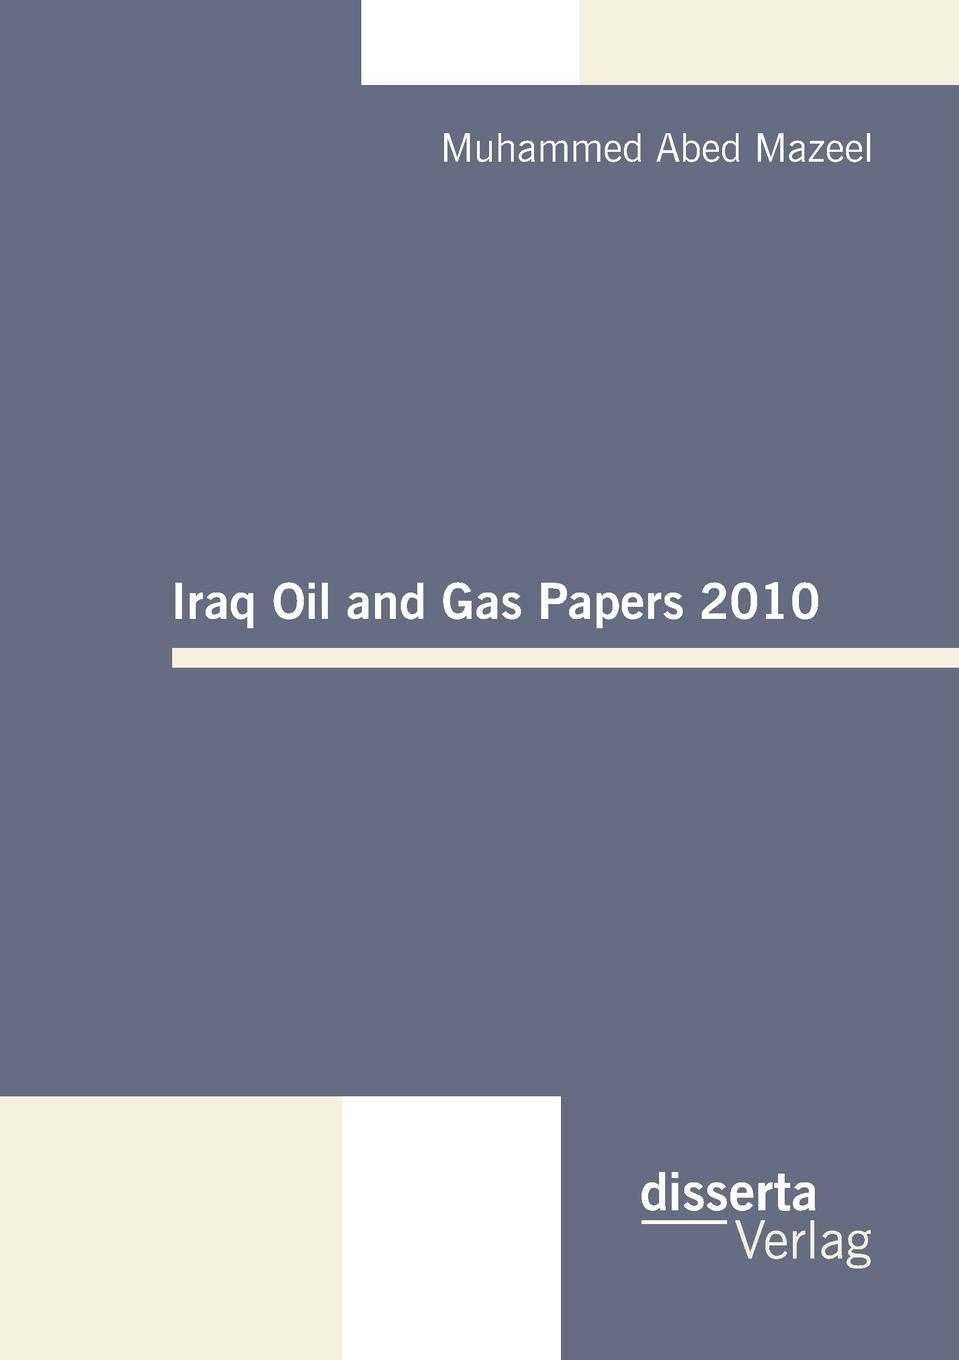 Muhammed Abed Mazeel Iraq Oil and Gas Papers 2010